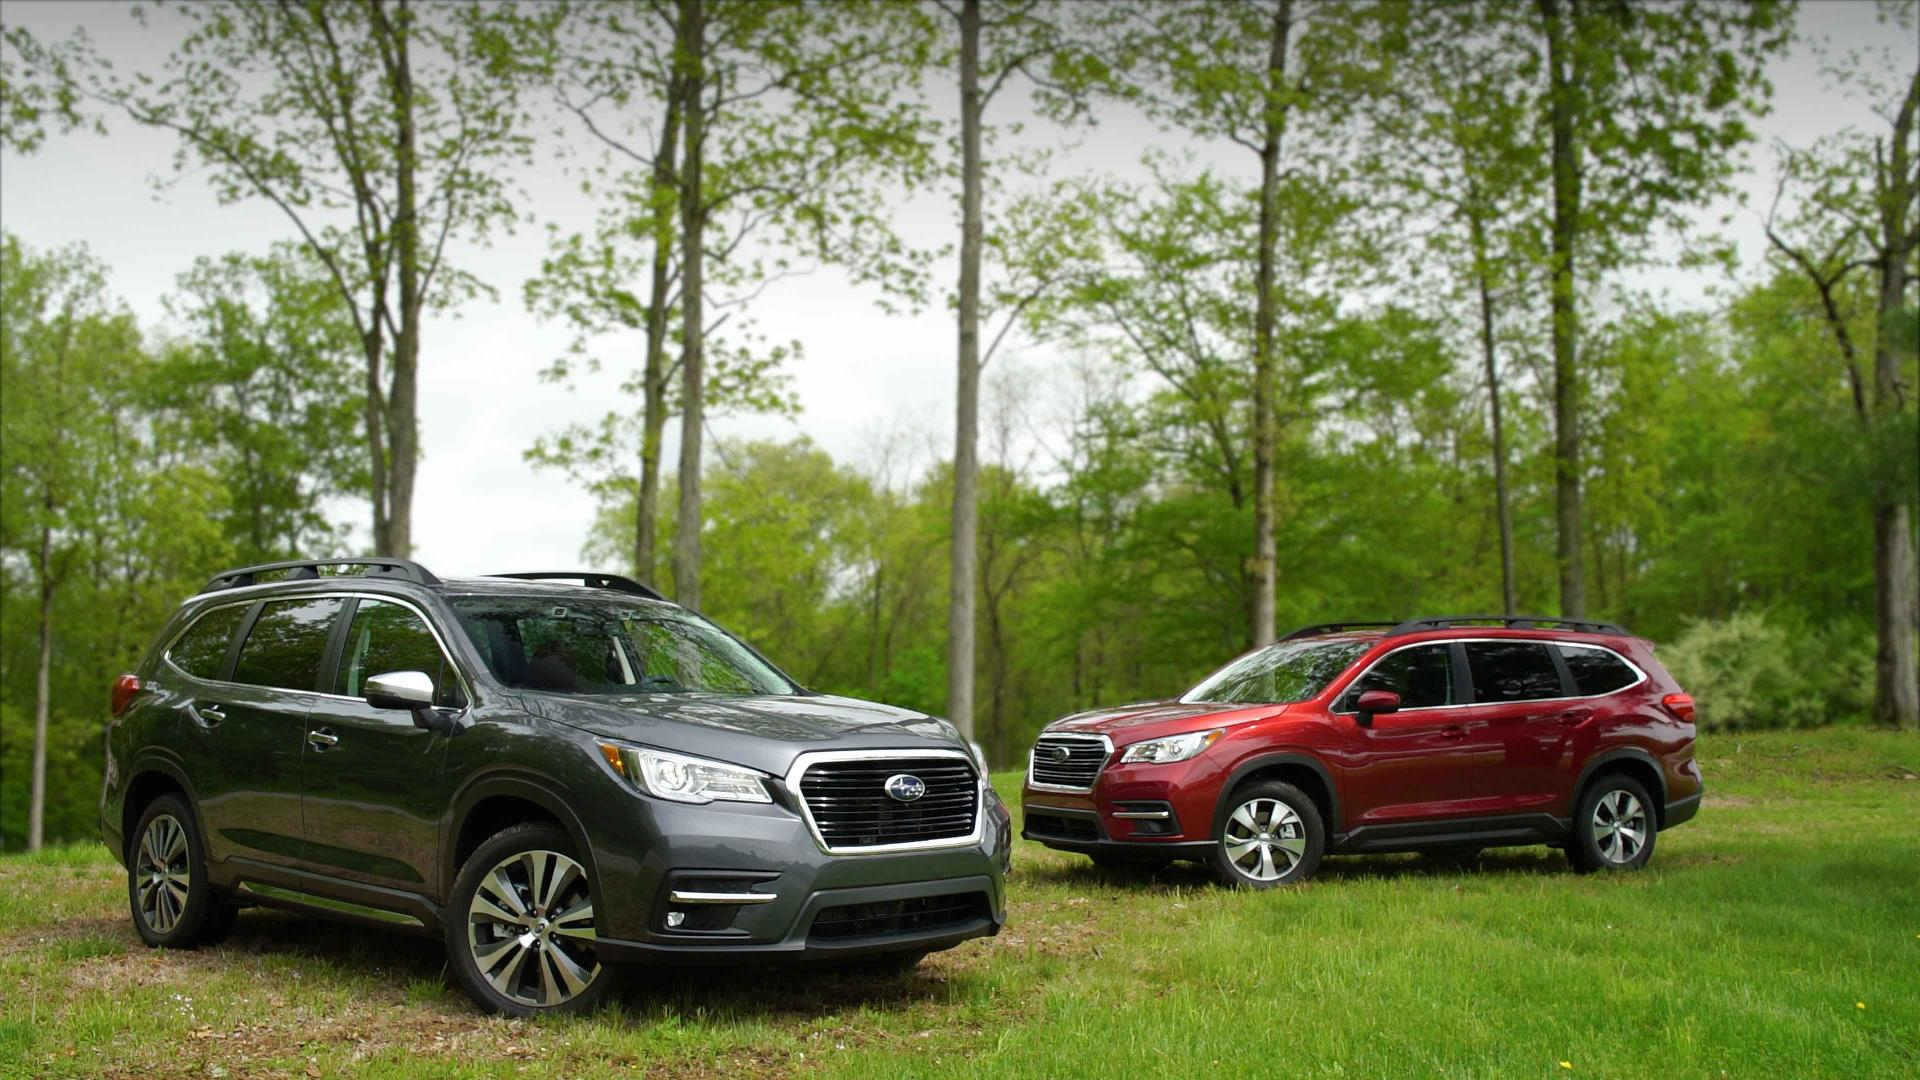 7582c4c076 2019 Subaru Ascent SUV Review - Consumer Reports